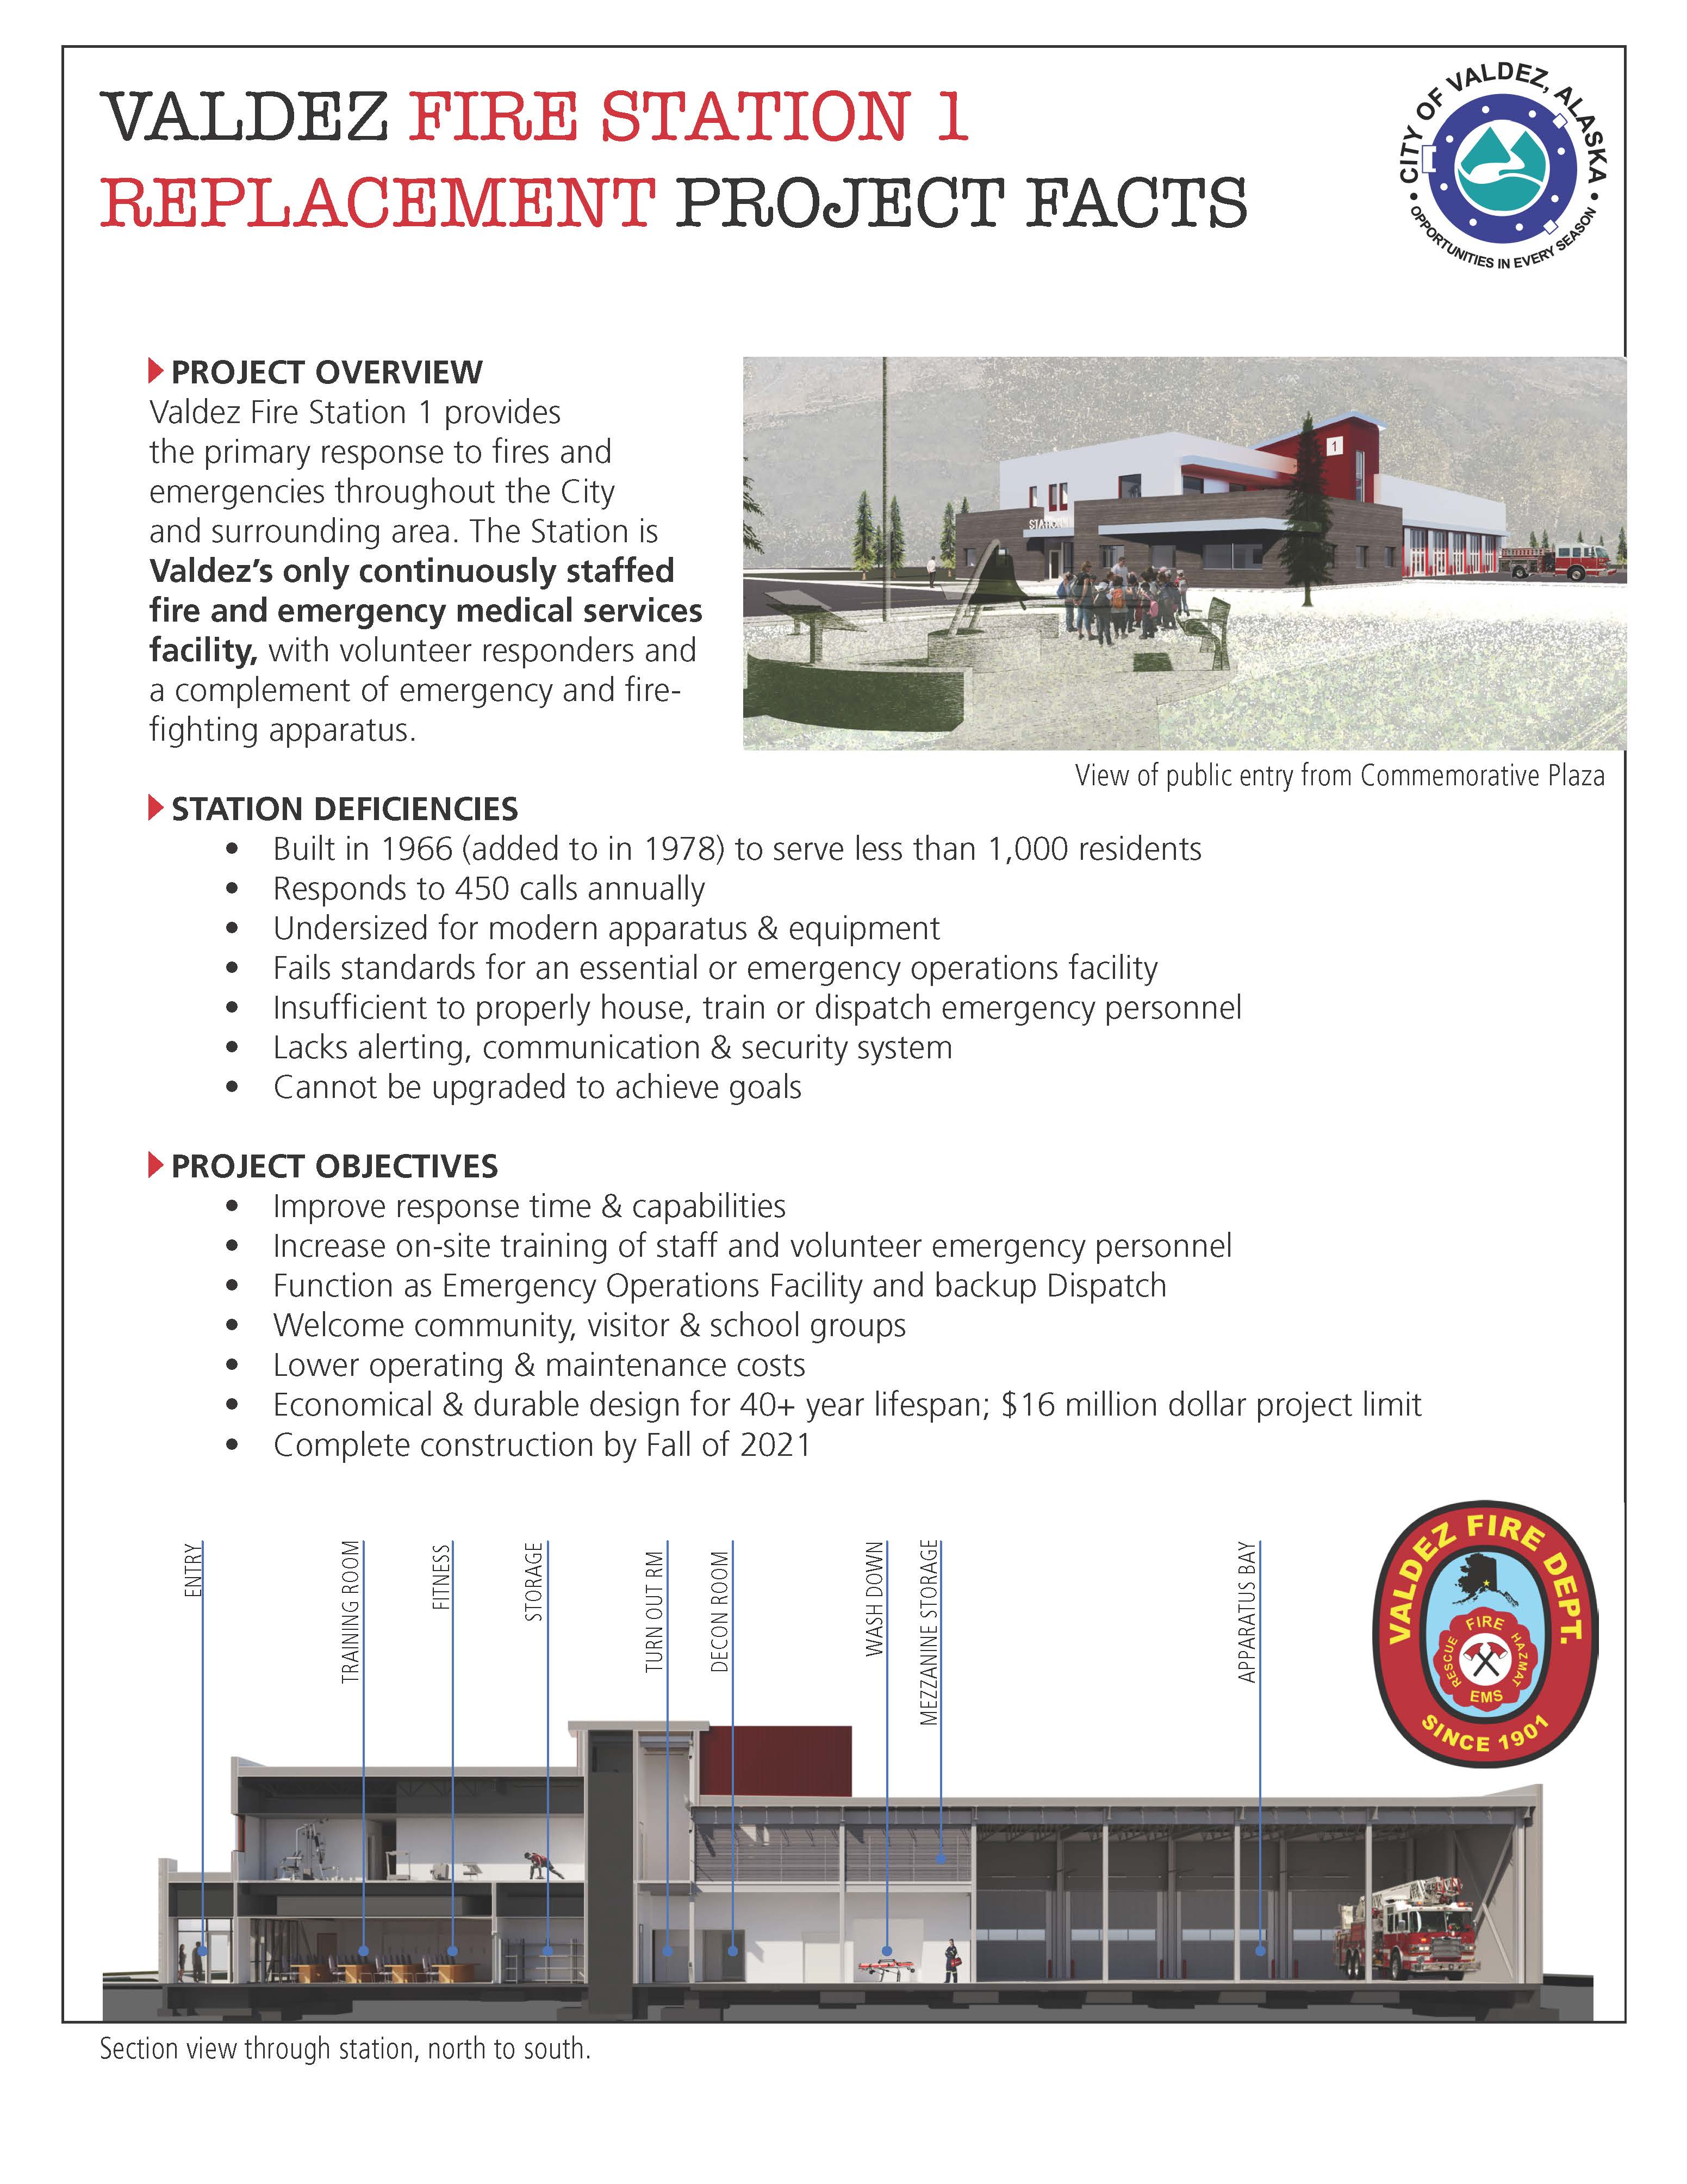 New Fire Station page 2